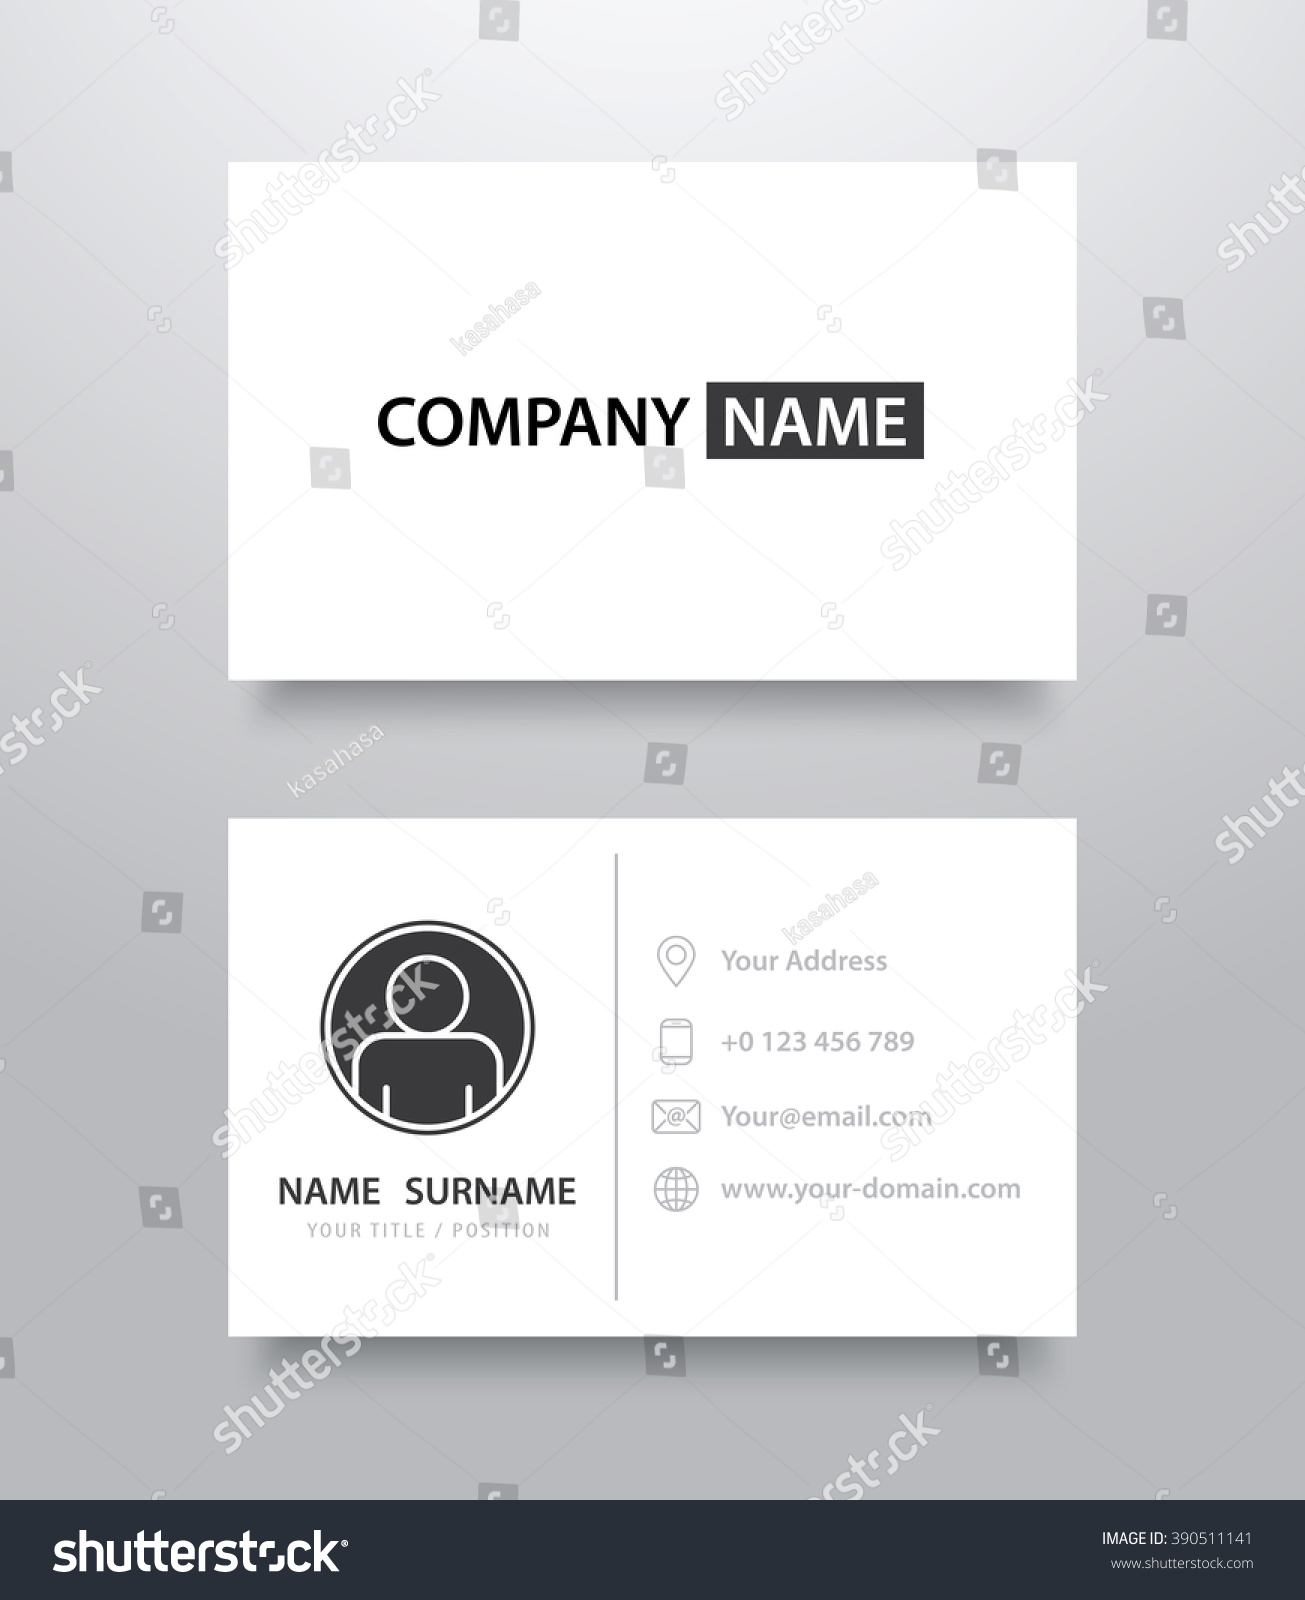 business card mockup template with shadow vector illustration